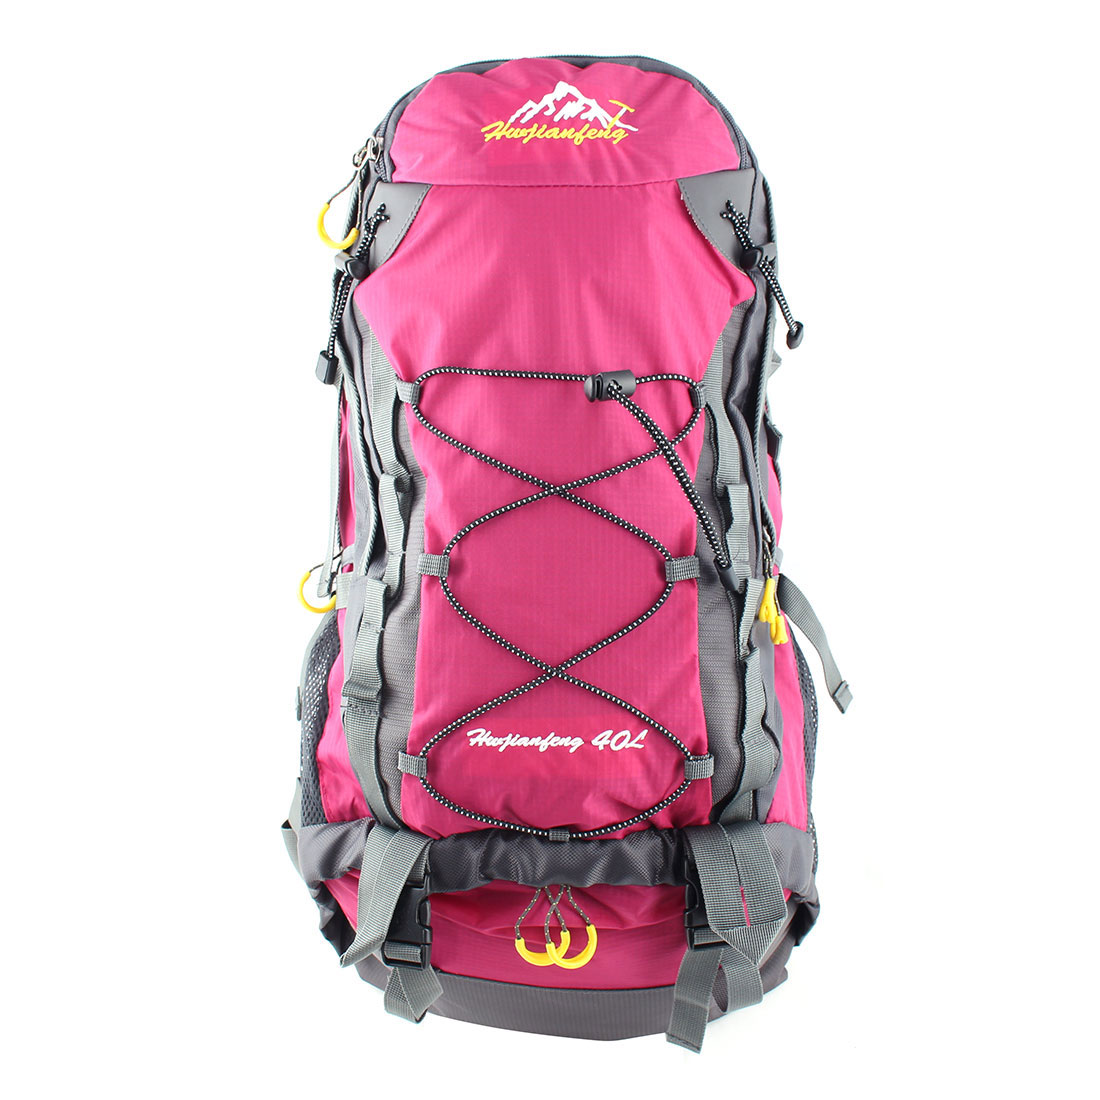 HWJIANFENG Authorized Outdoor Travel Trekking Climbing Mountaineering Pack Water Resistant Lightweight Sport Bag Hiking Backpack Daypack Purple 40L